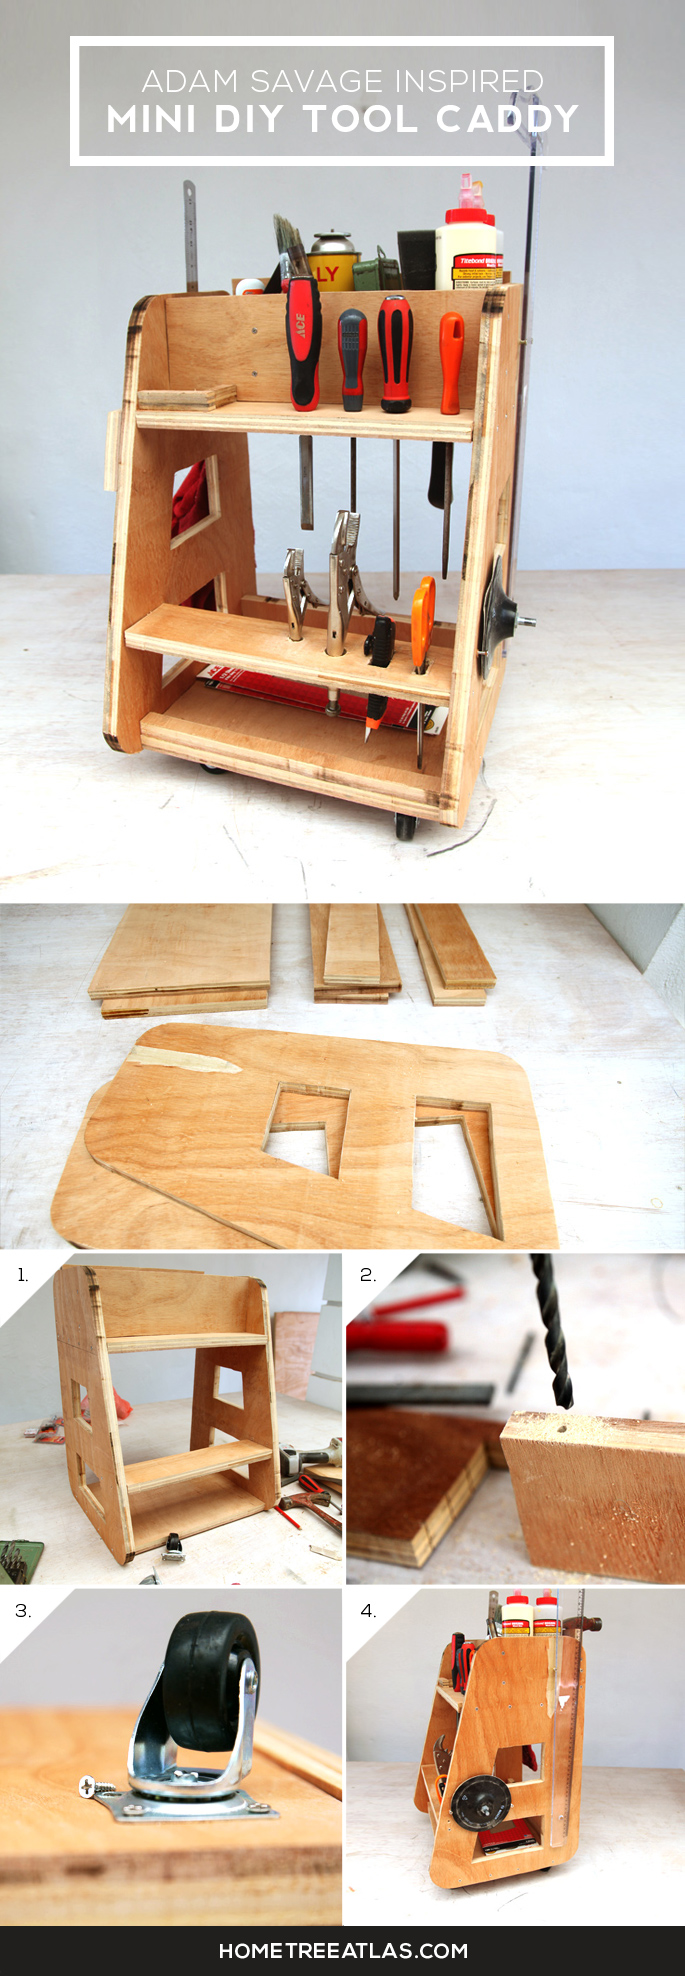 DIY Tool Caddy Inspired By Adam Savage From Mythbusters